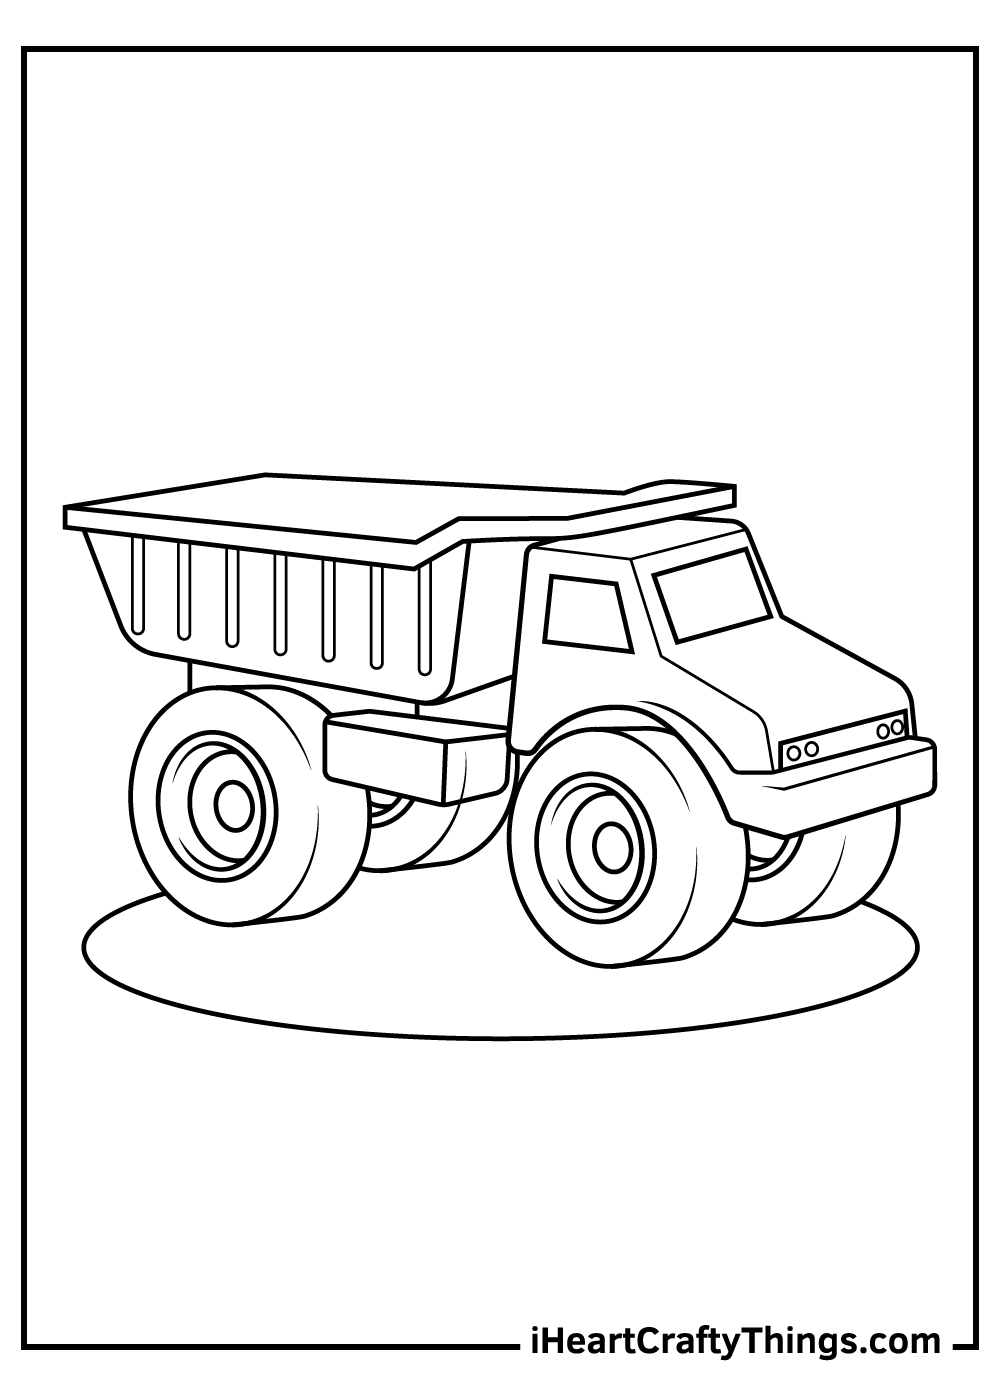 toy truck coloring pages for kids free download